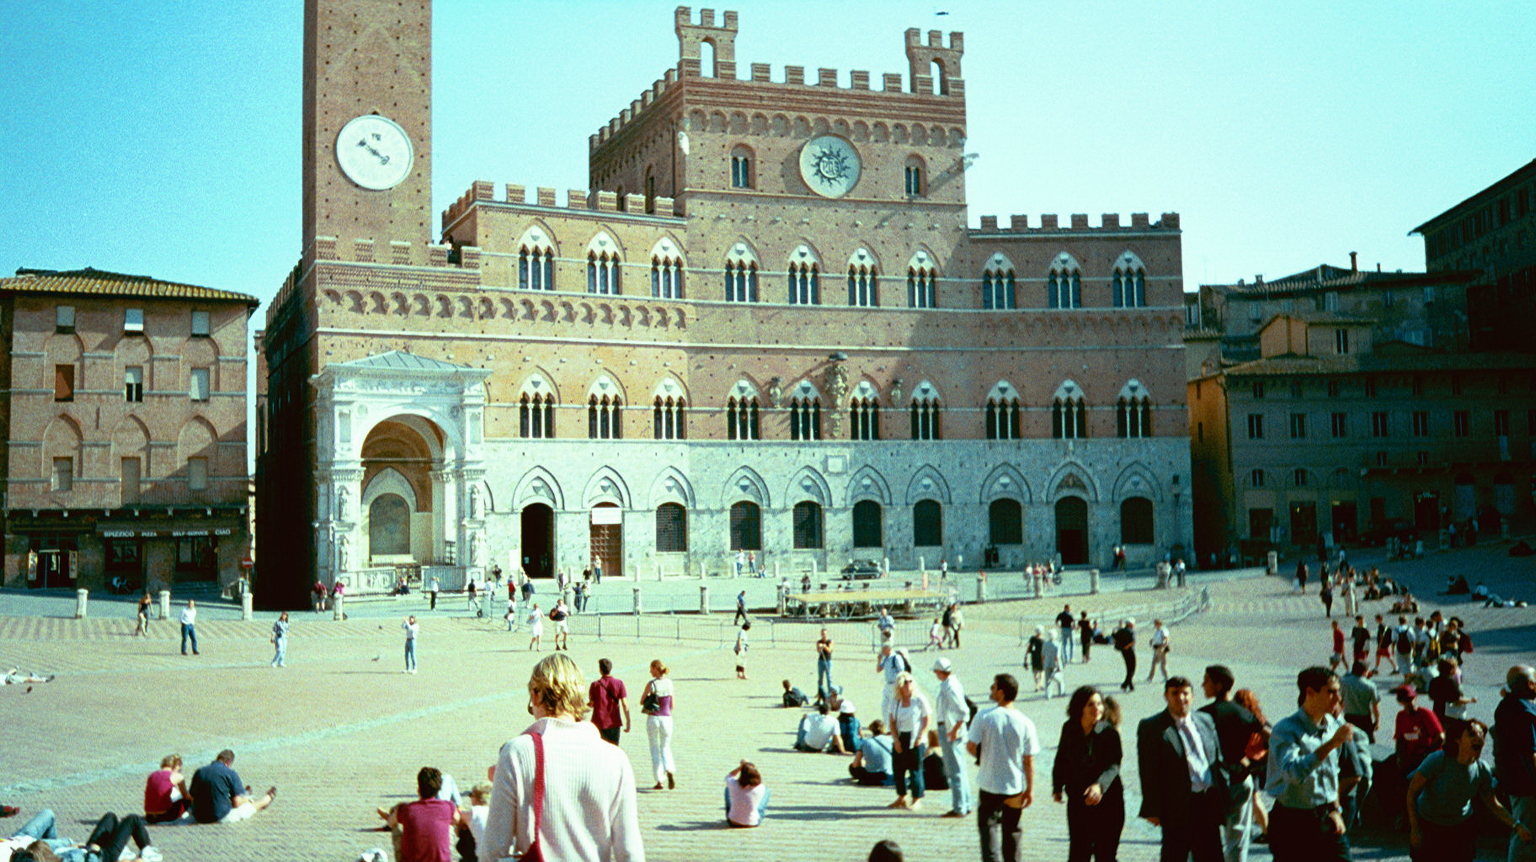 Siena - Ideal Destination For Art Lovers